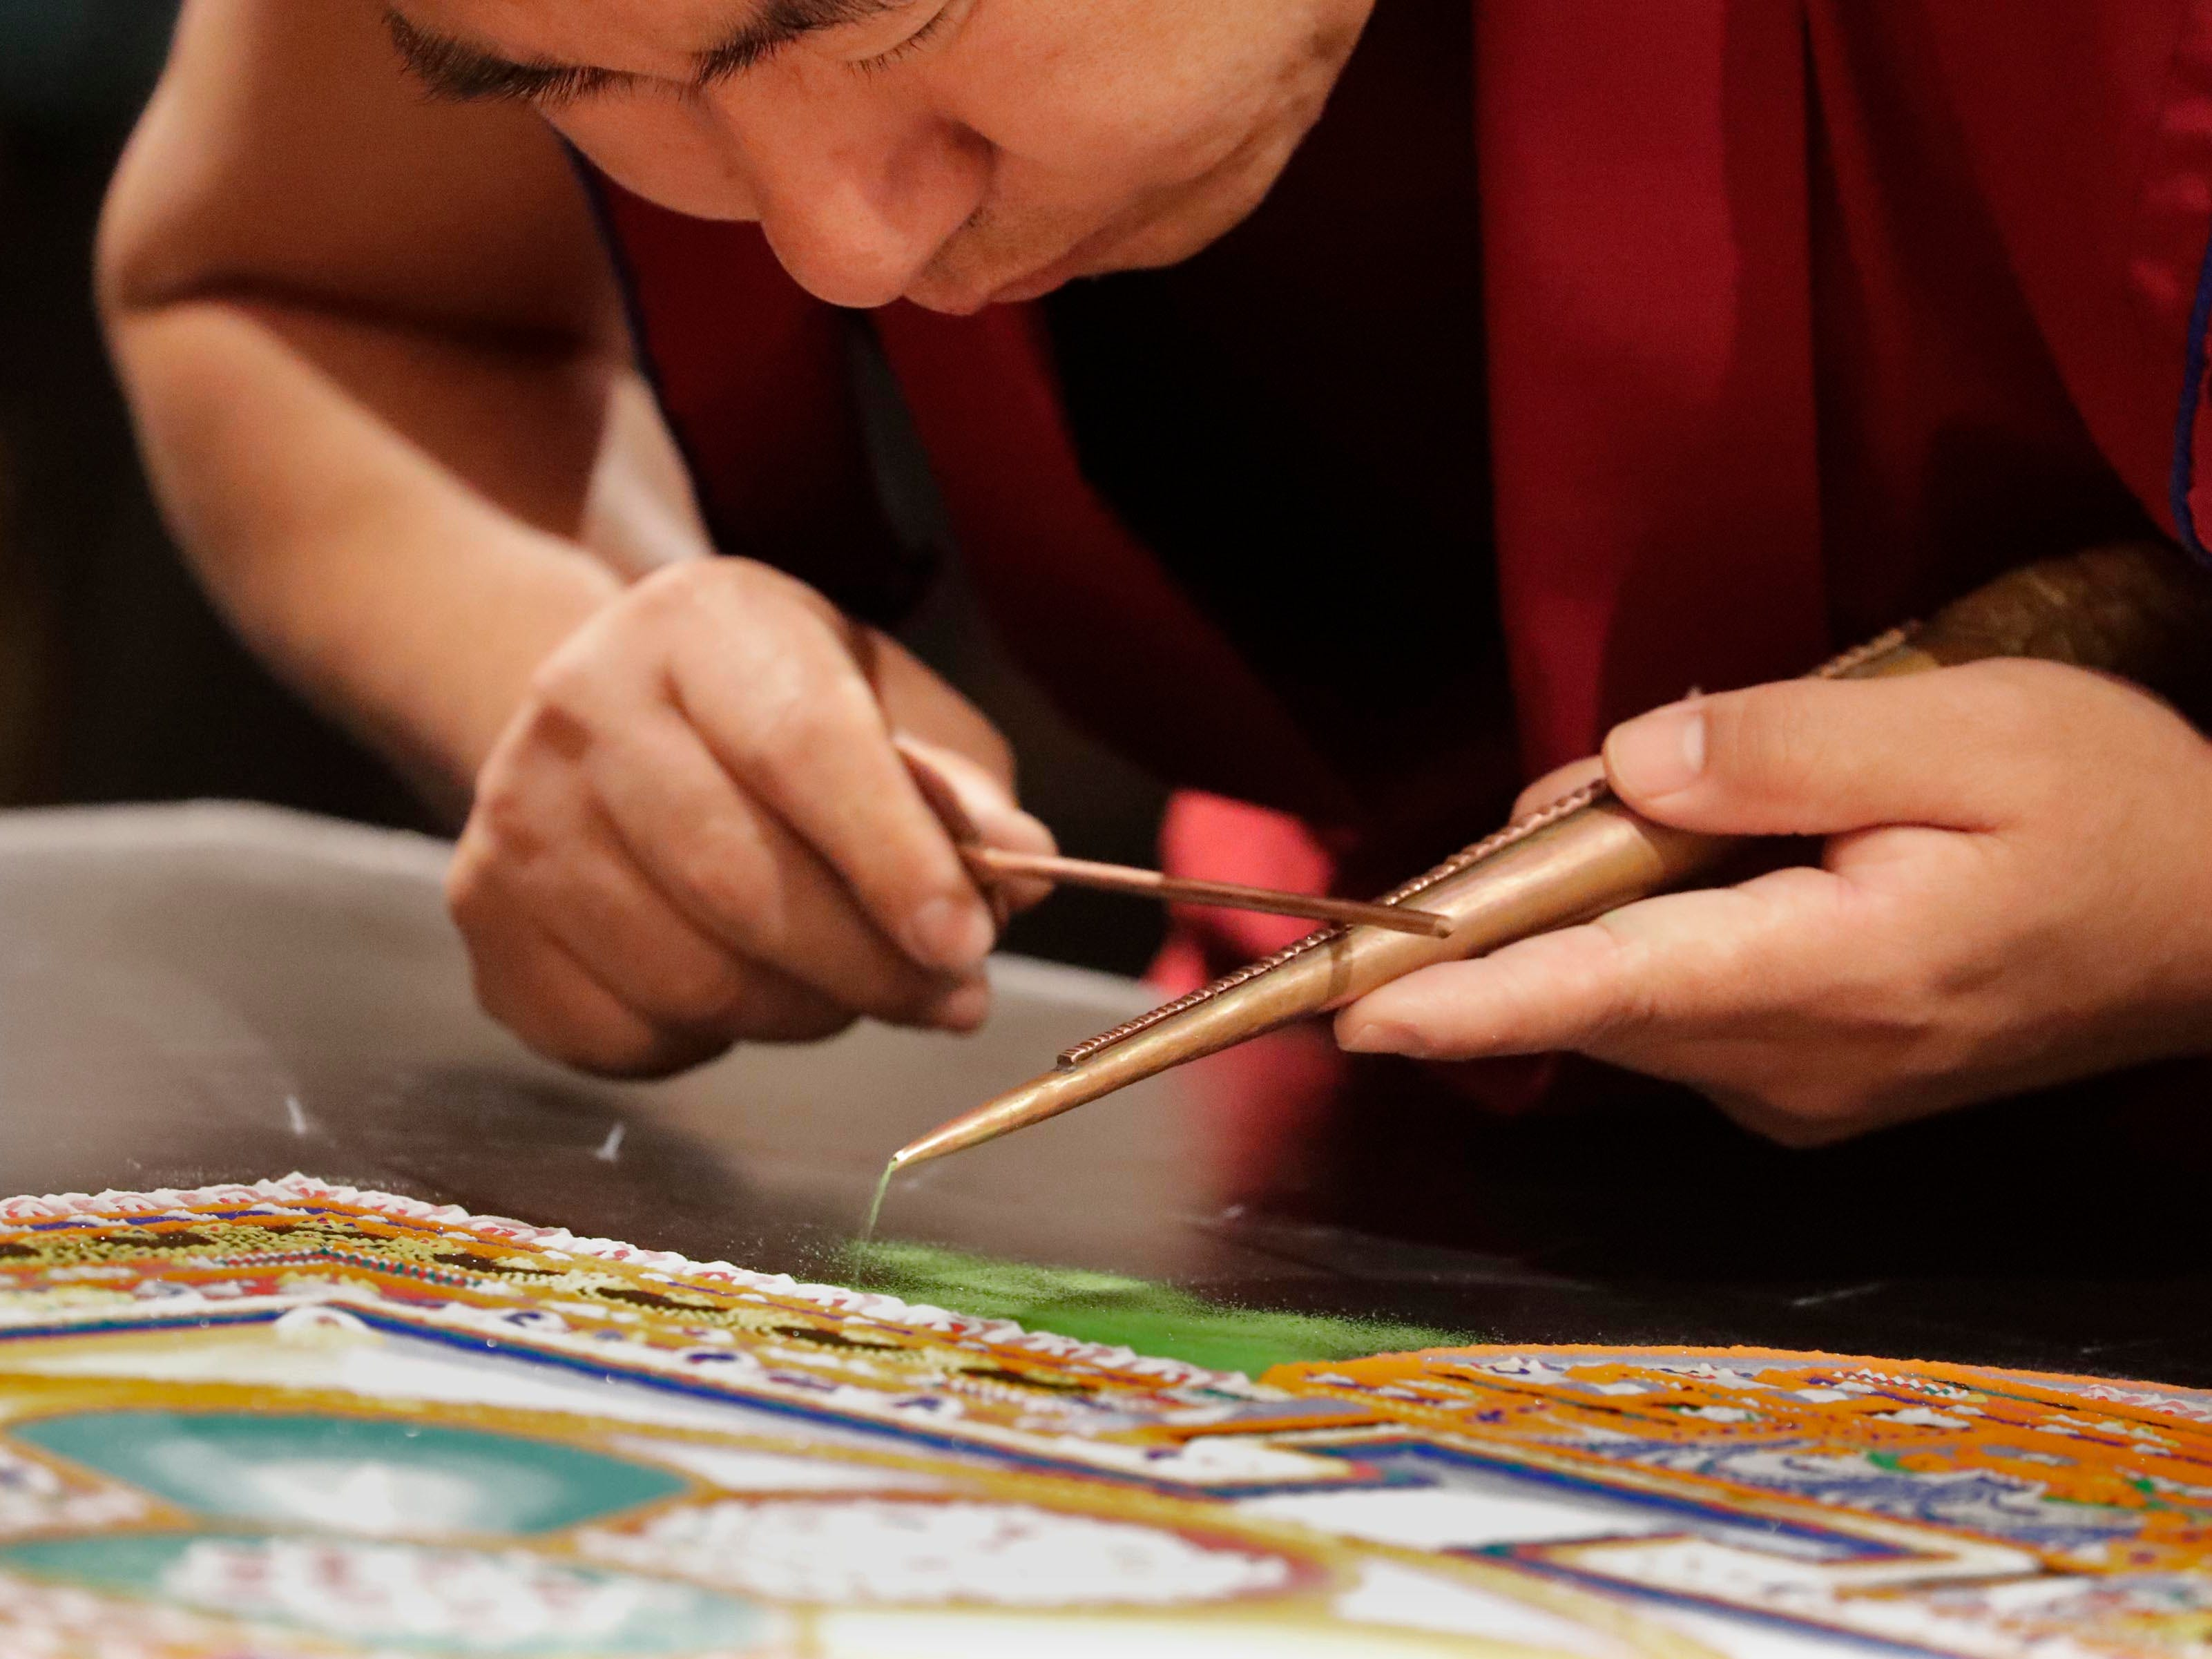 Choegyal Sangpo, a Buddhist monk,  creates vibrations on the funnel to create a flow of sand to create the mandala. Buddhist monks from the Drepung Loseling Monastery, mix bowls of colorful sand and use funnels to apply the sand and create a  sand mandala in the center of Milwaukee's City Hall, Thursday, April 11, 2019.